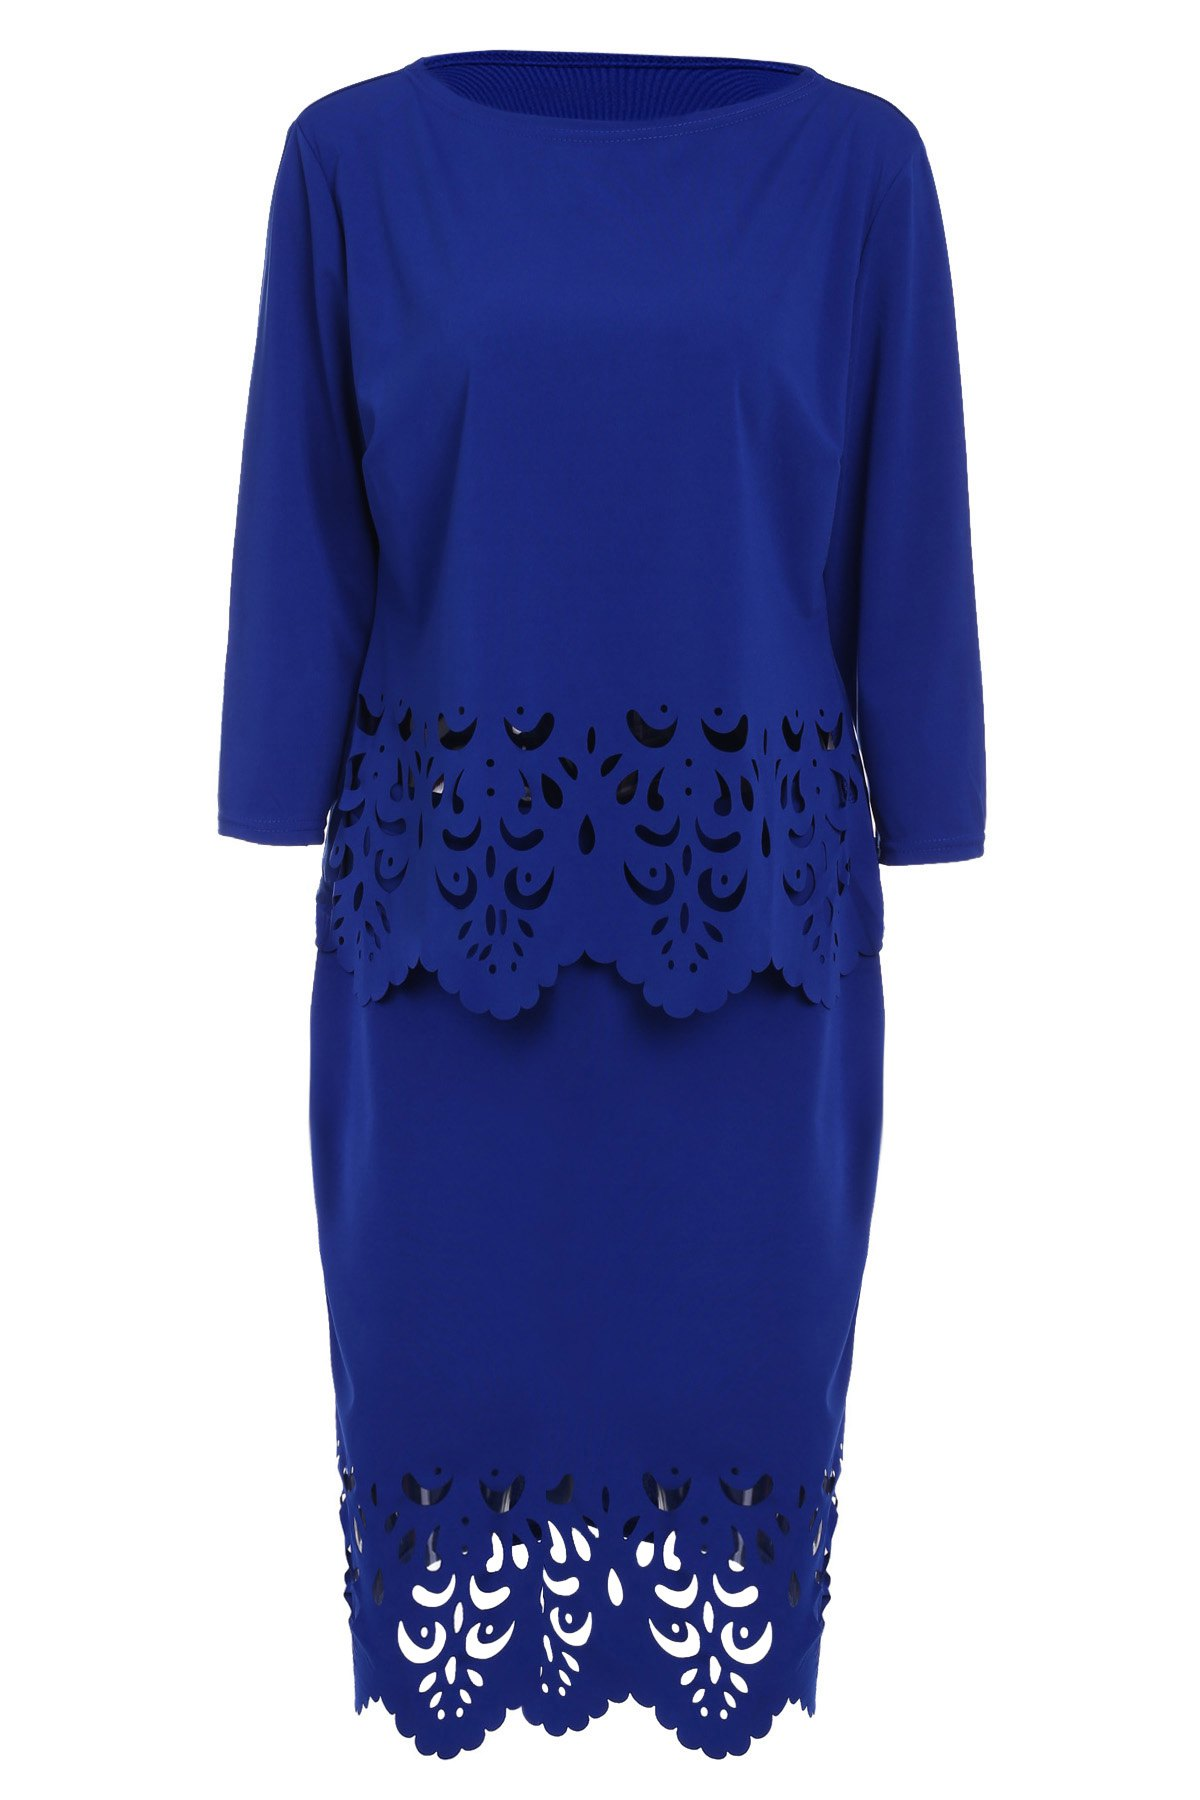 Chic 3/4 Sleeve Round Neck T-Shirt + Cut Out Skirt Women's Twinset - SAPPHIRE BLUE L